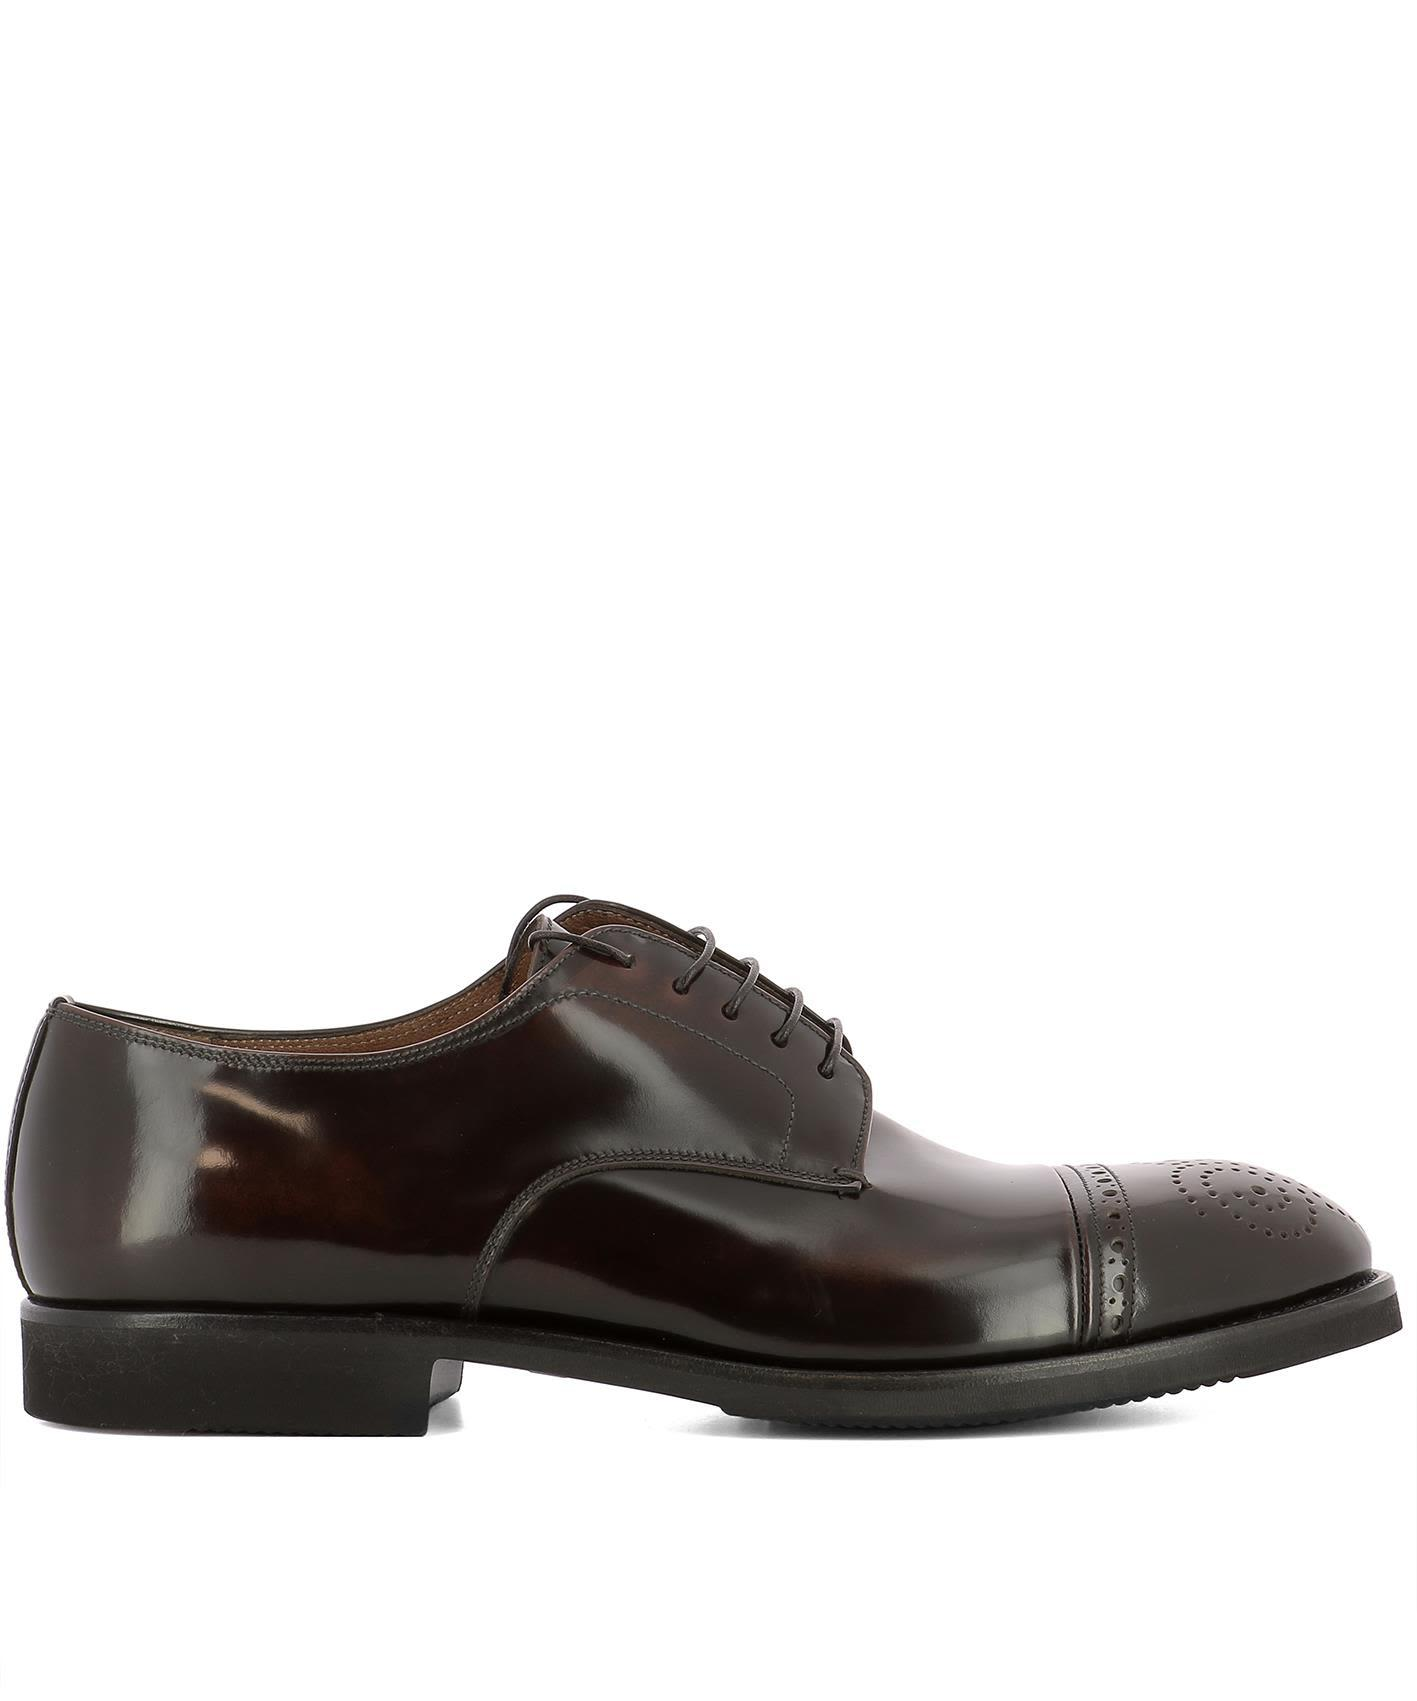 Premiata Brown Leather Lace-up